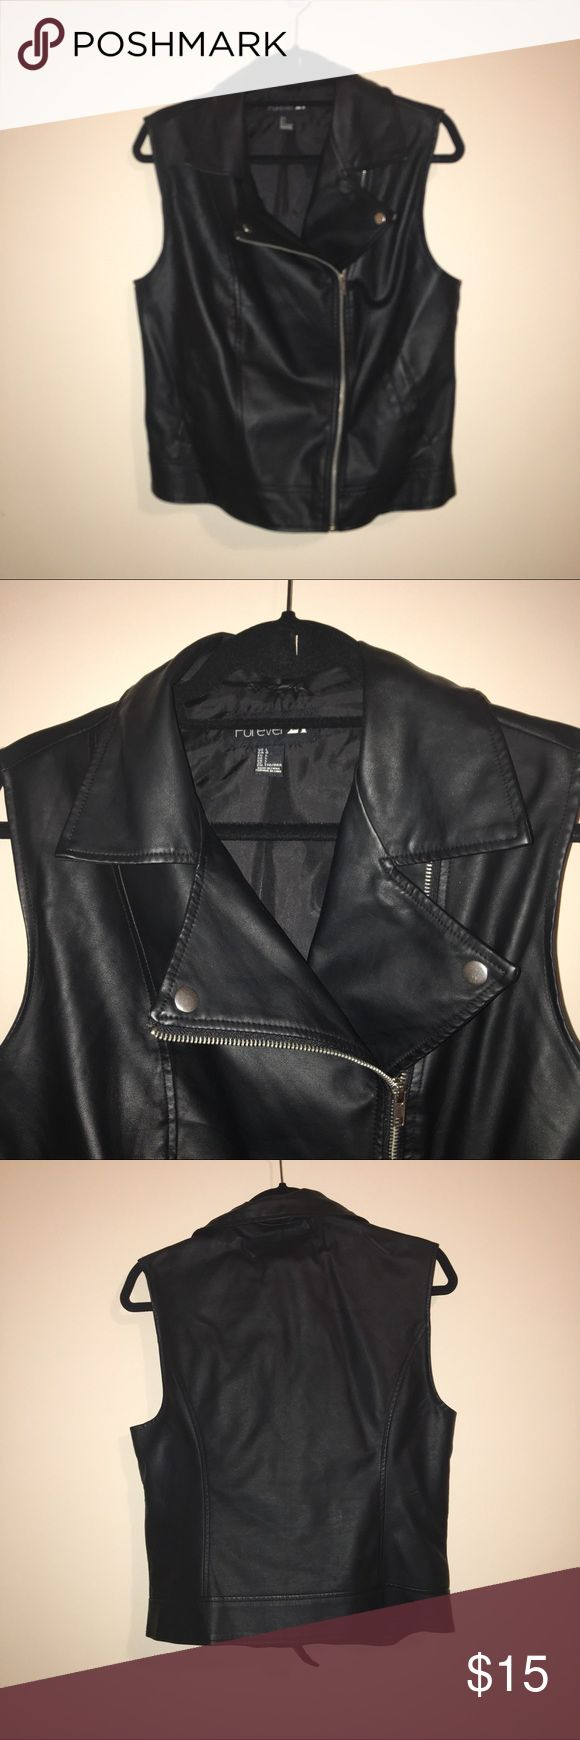 Faux Leather Biker Vest Faux leather biker/motto vest for Forever 21. Great for layering. I have worn this vest in all seasons including cool summer nights. Forever 21 Jackets & Coats Vests